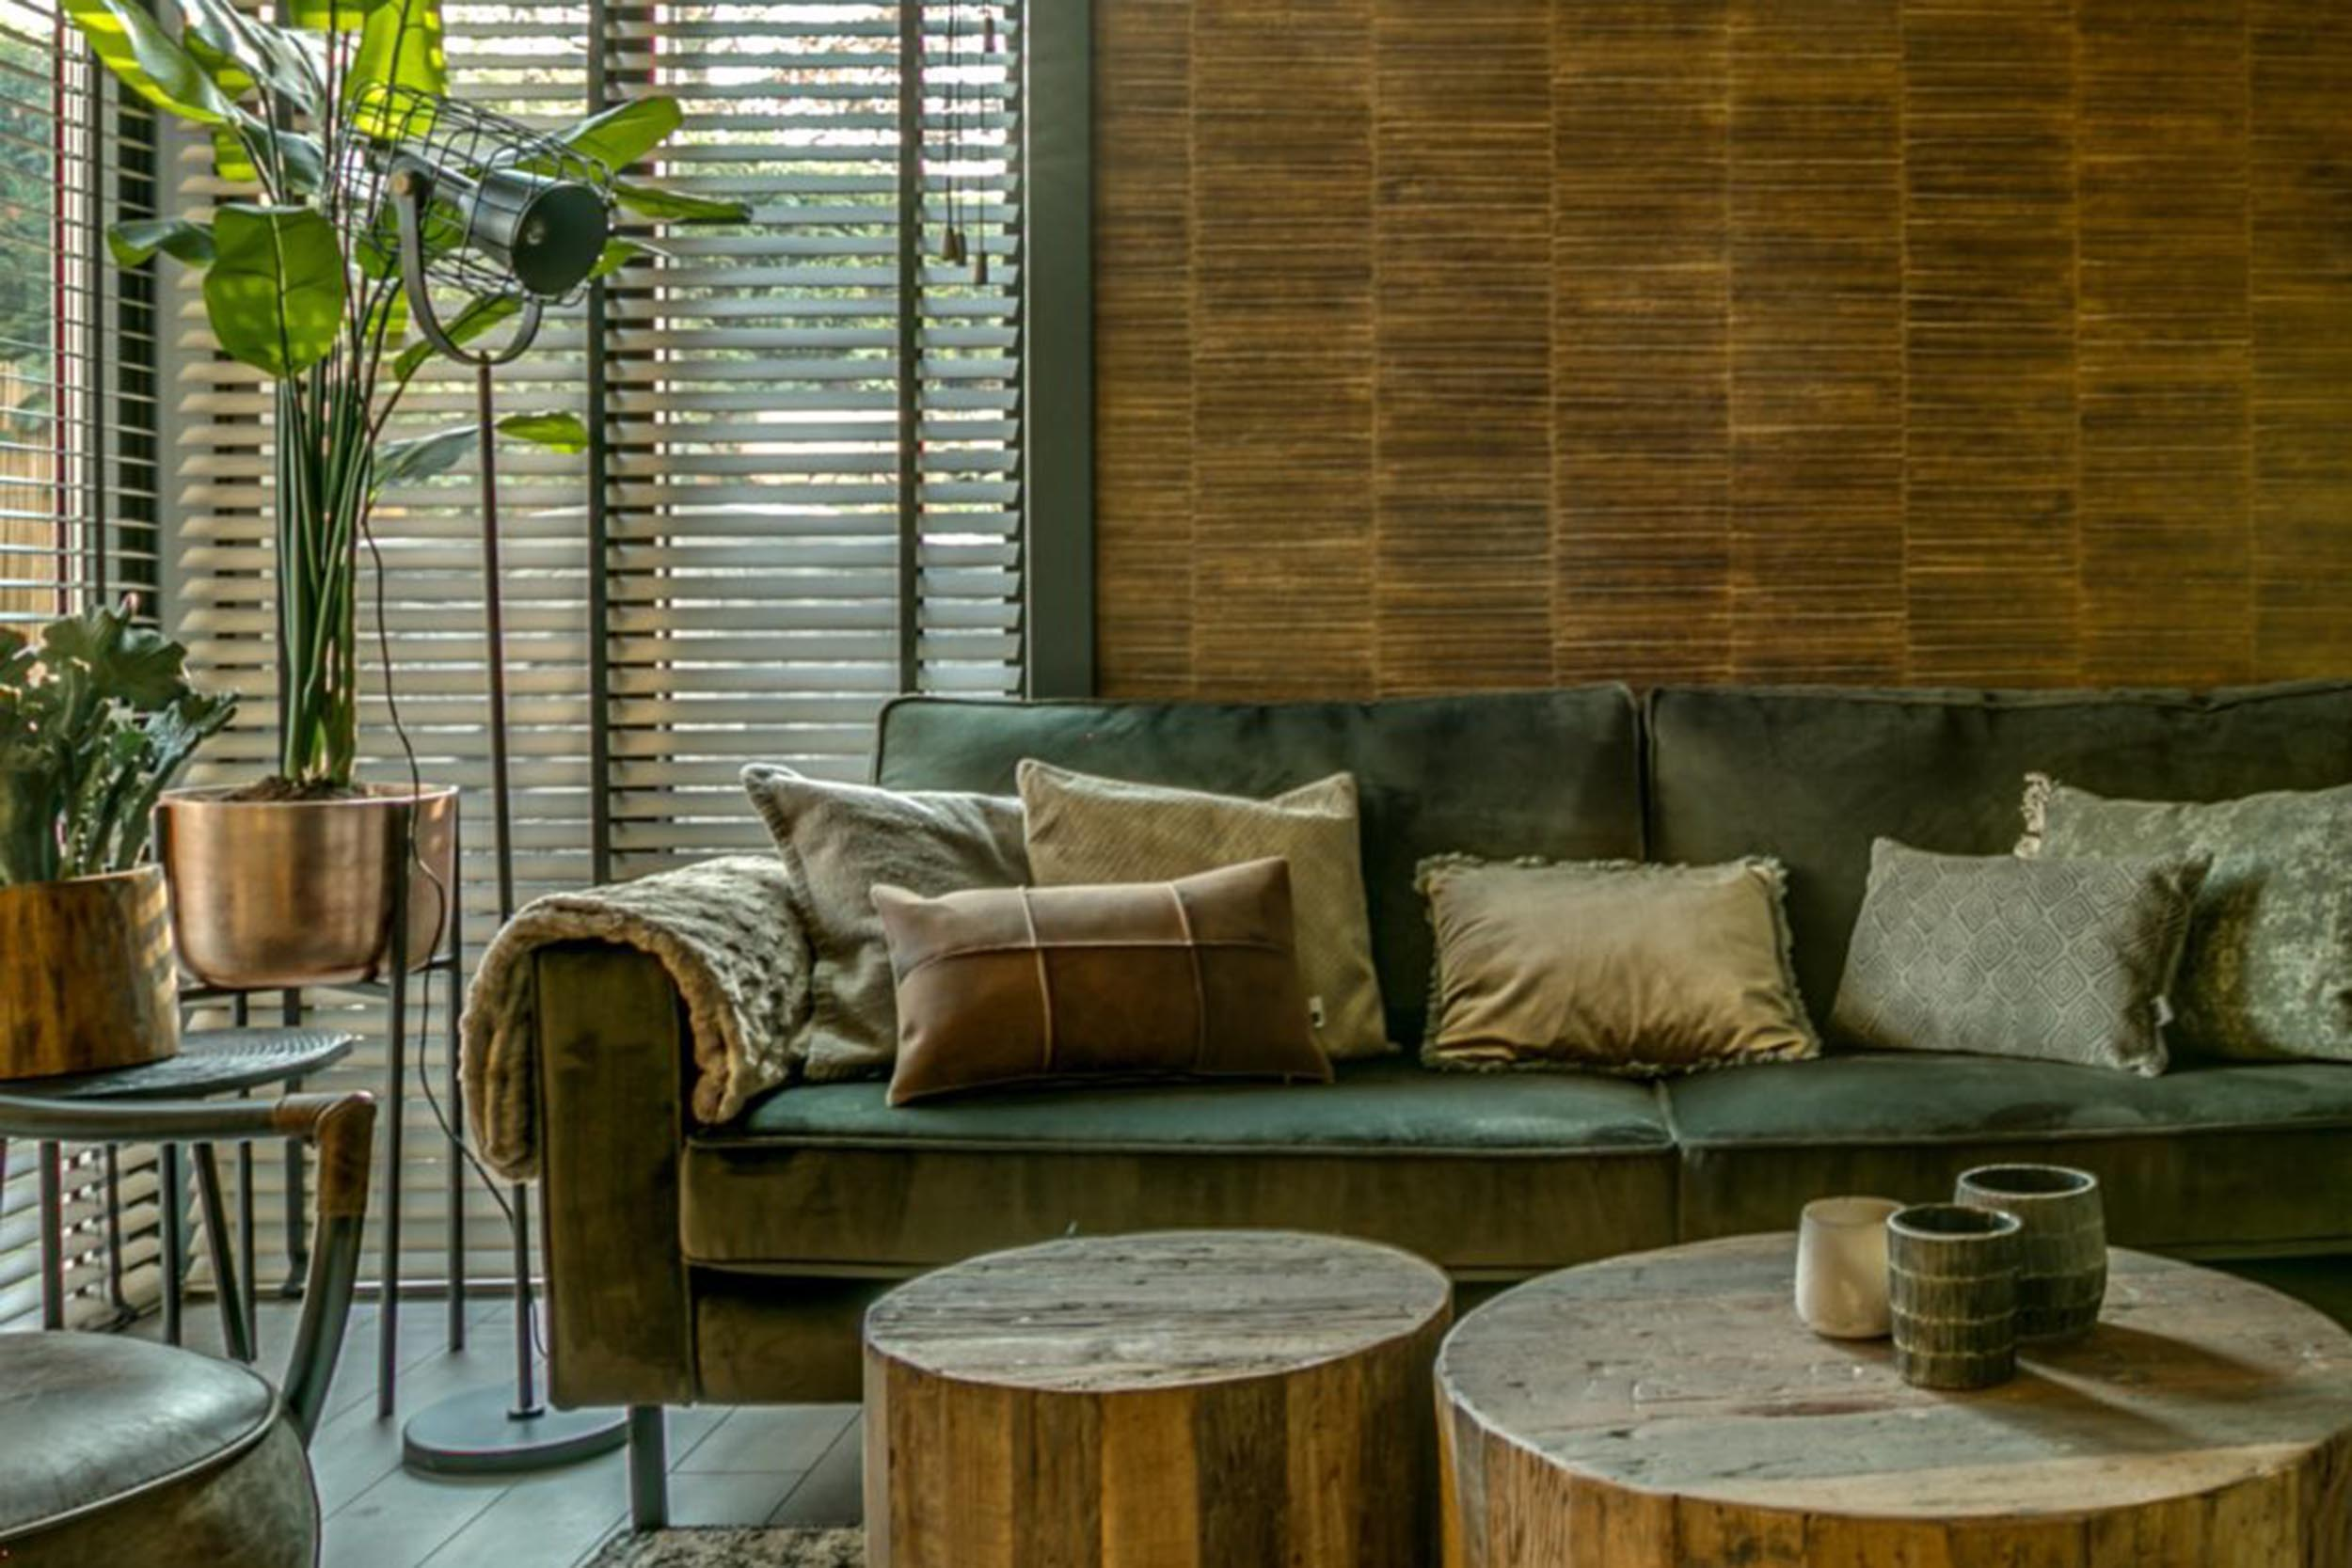 Edith Pijl - Styling woonkamer